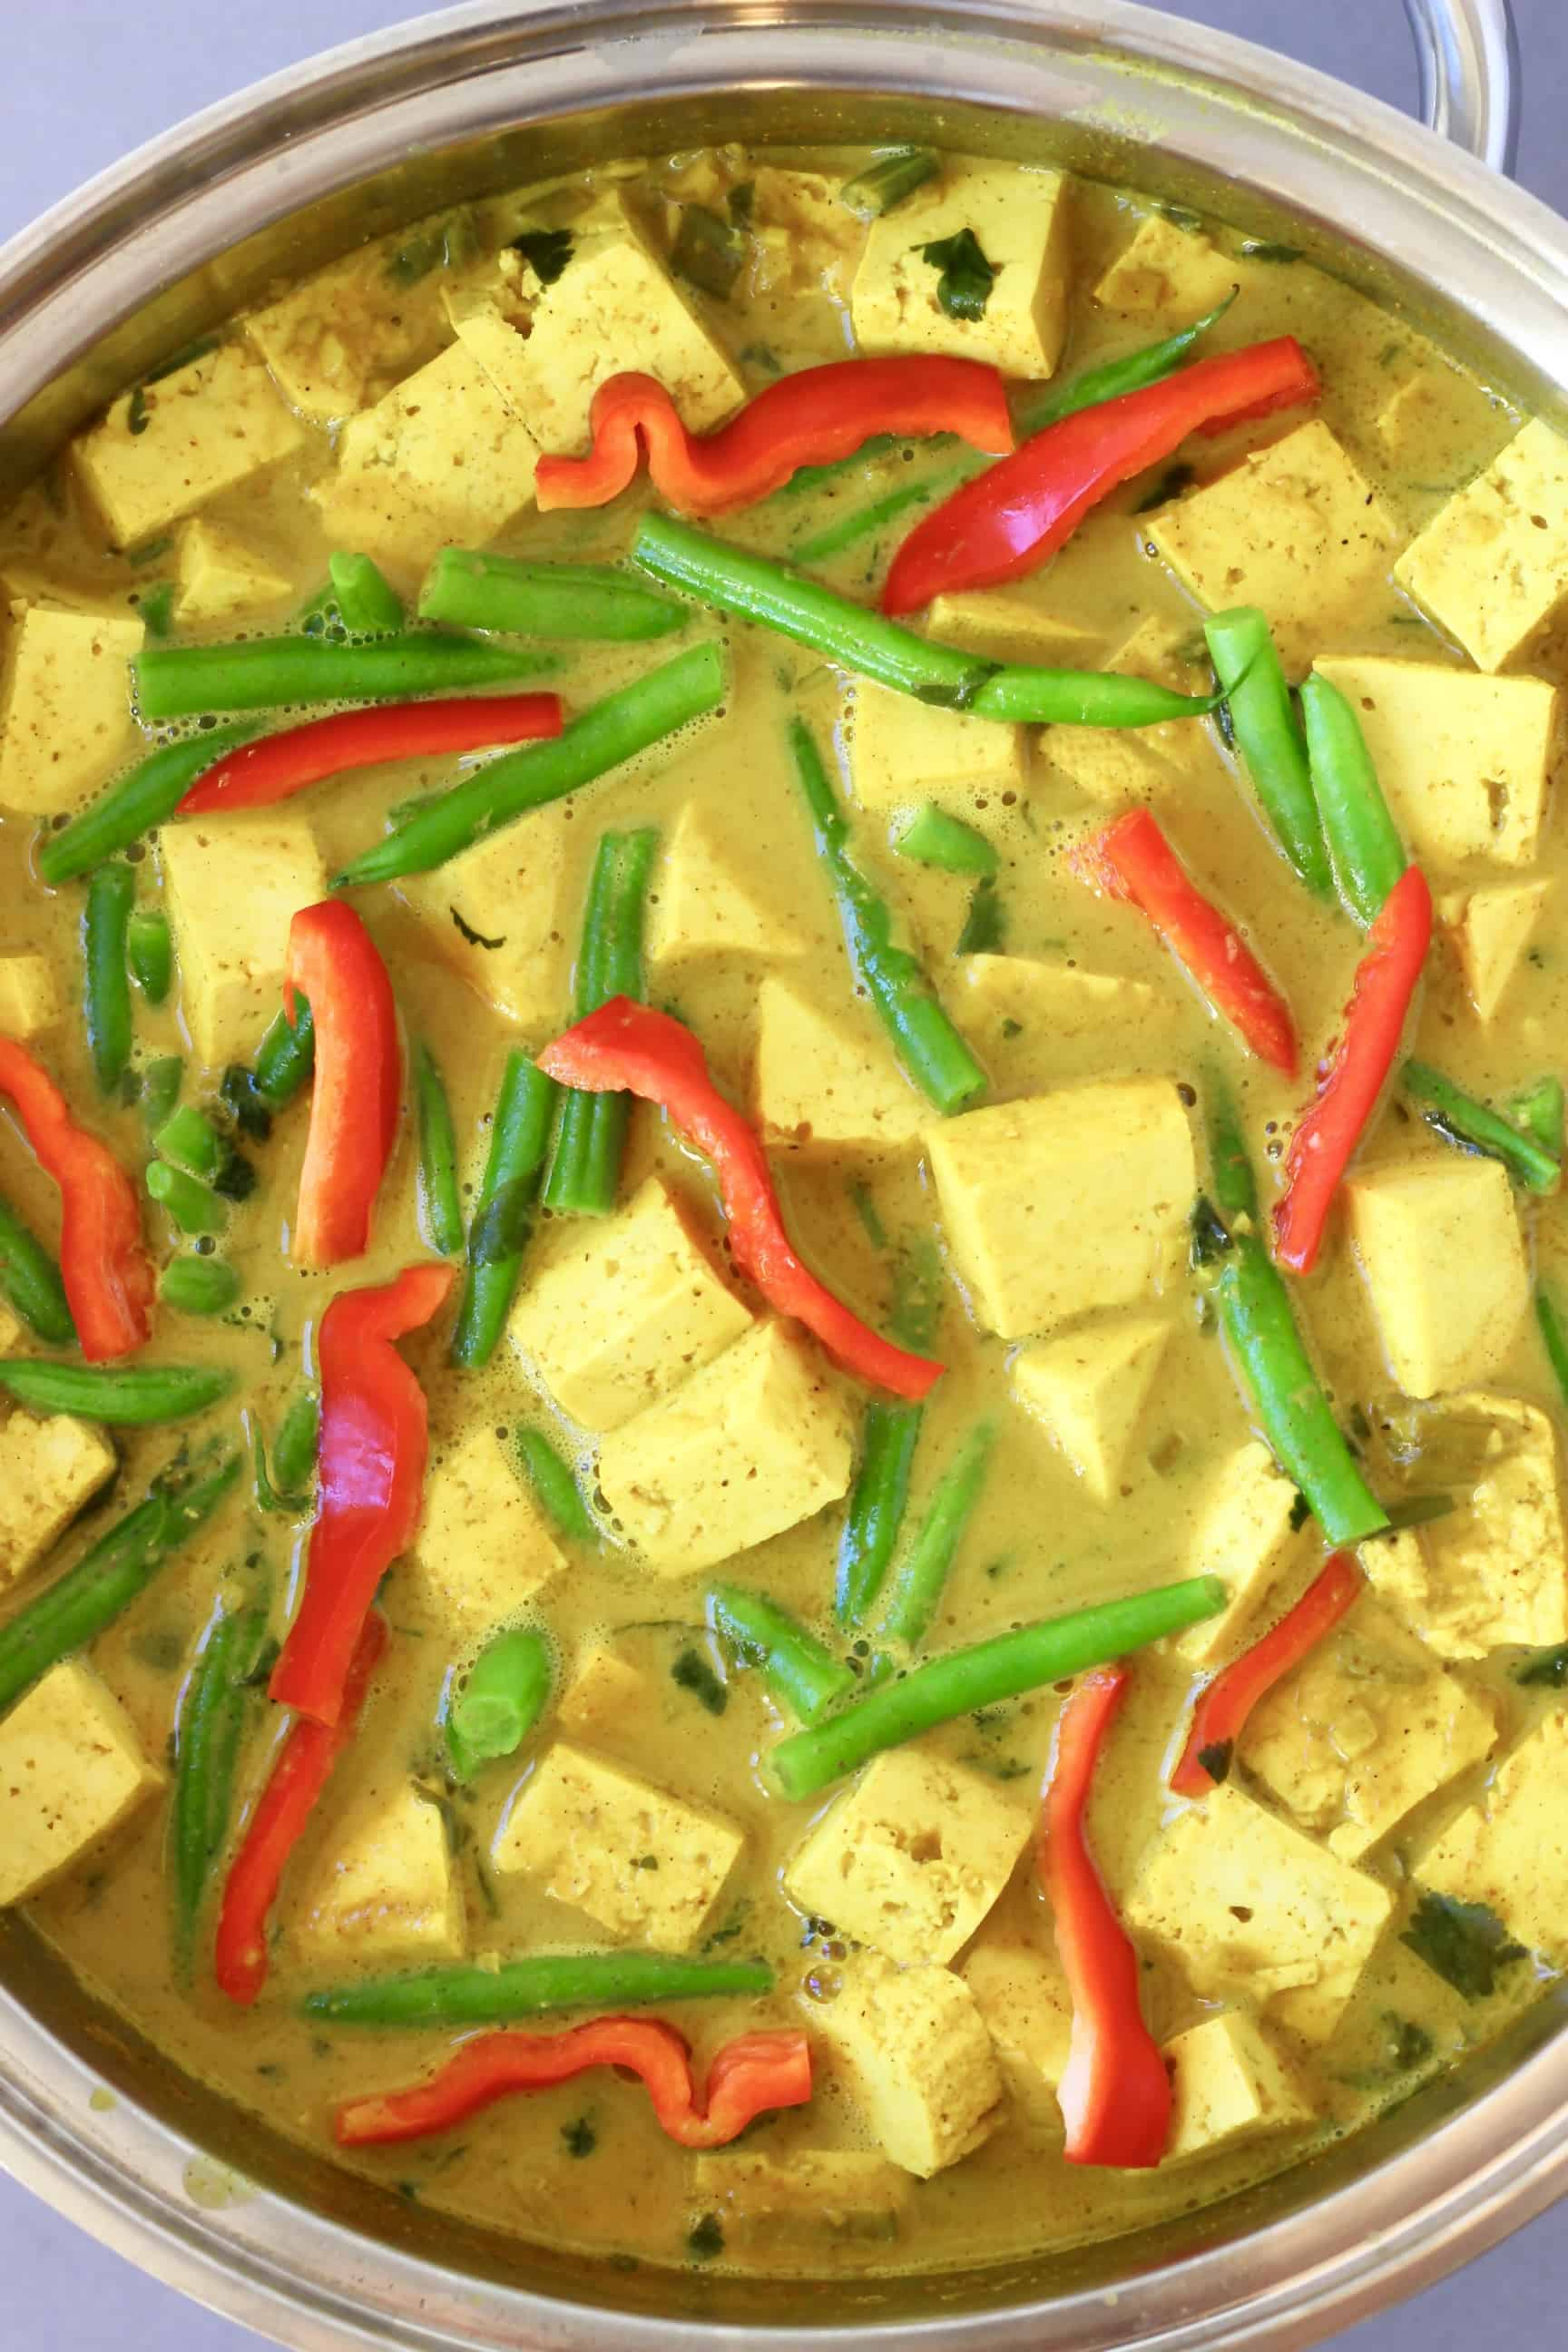 Cubes of tofu, green beans and strips of red pepper in a yellow curry sauce in a silver pan